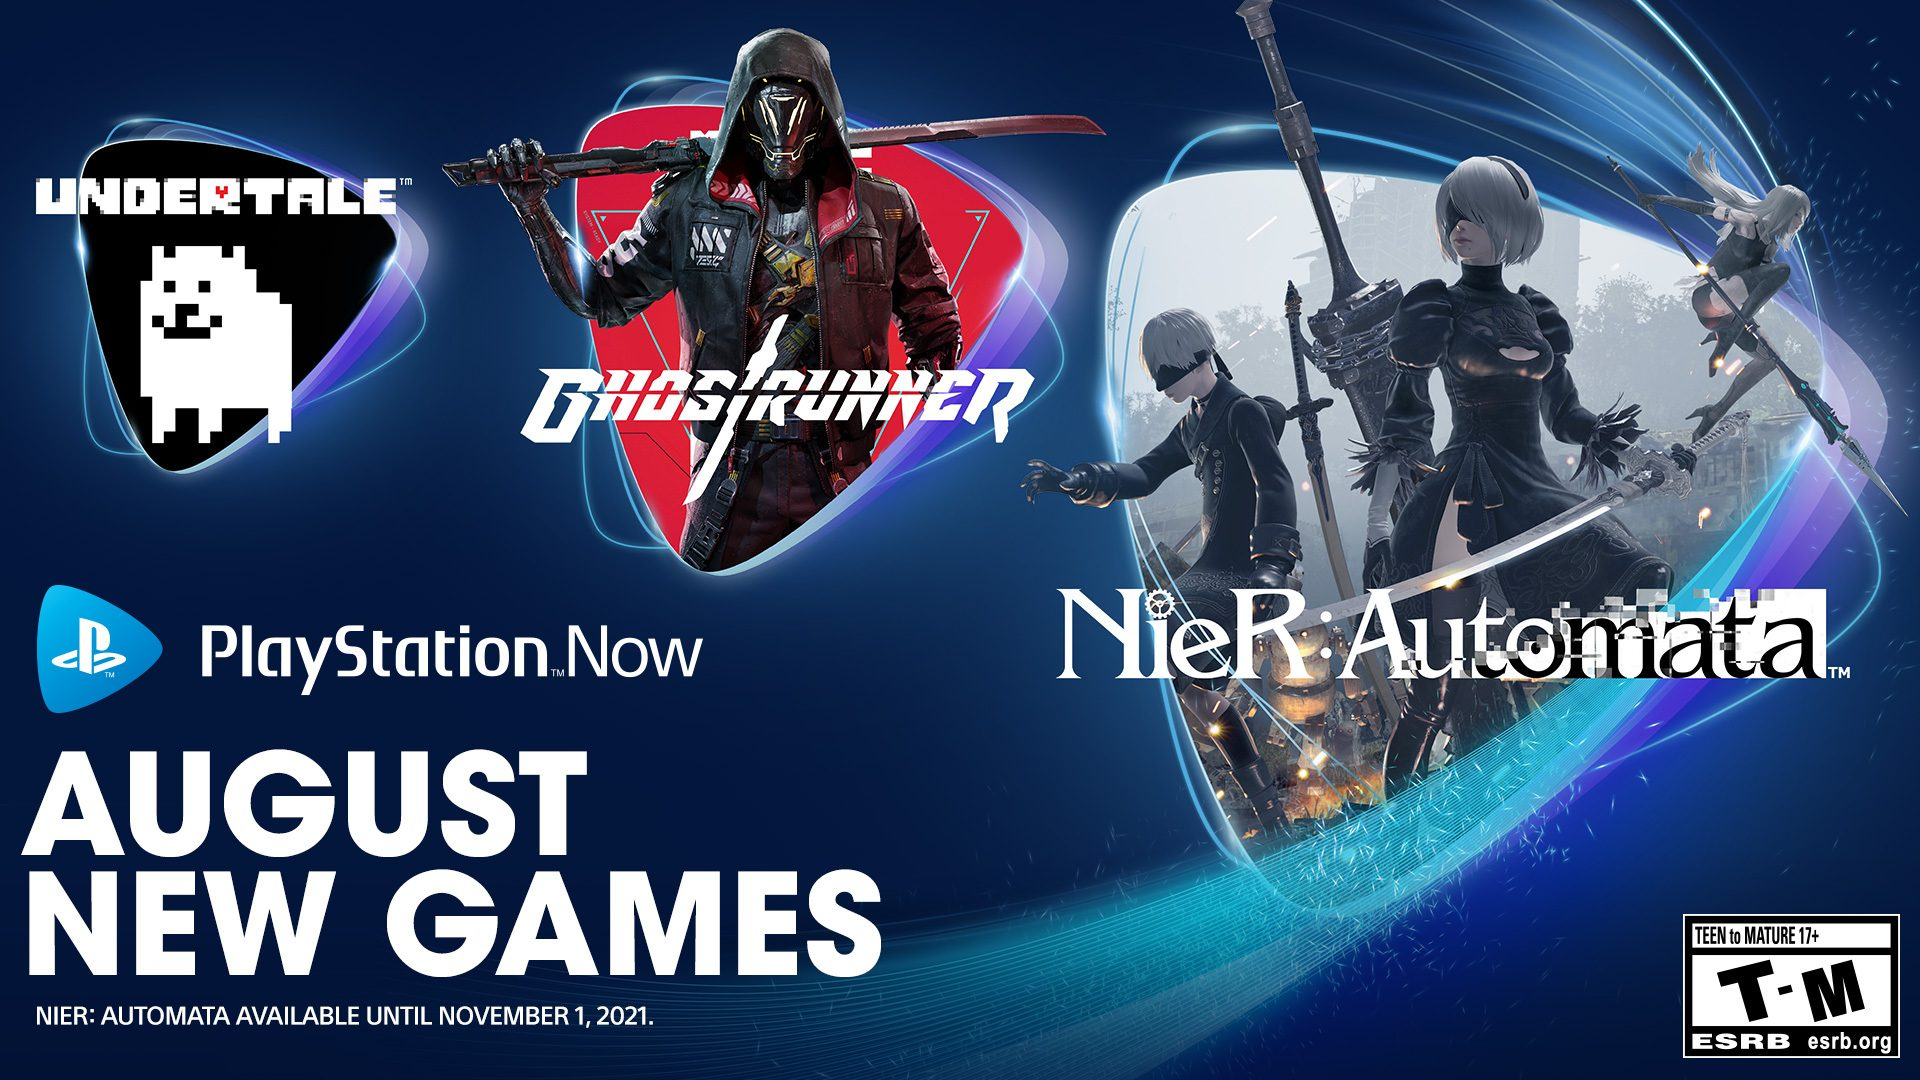 playstation-now-online-games-for-august:-nier:-automata,-ghostrunner,-undertale